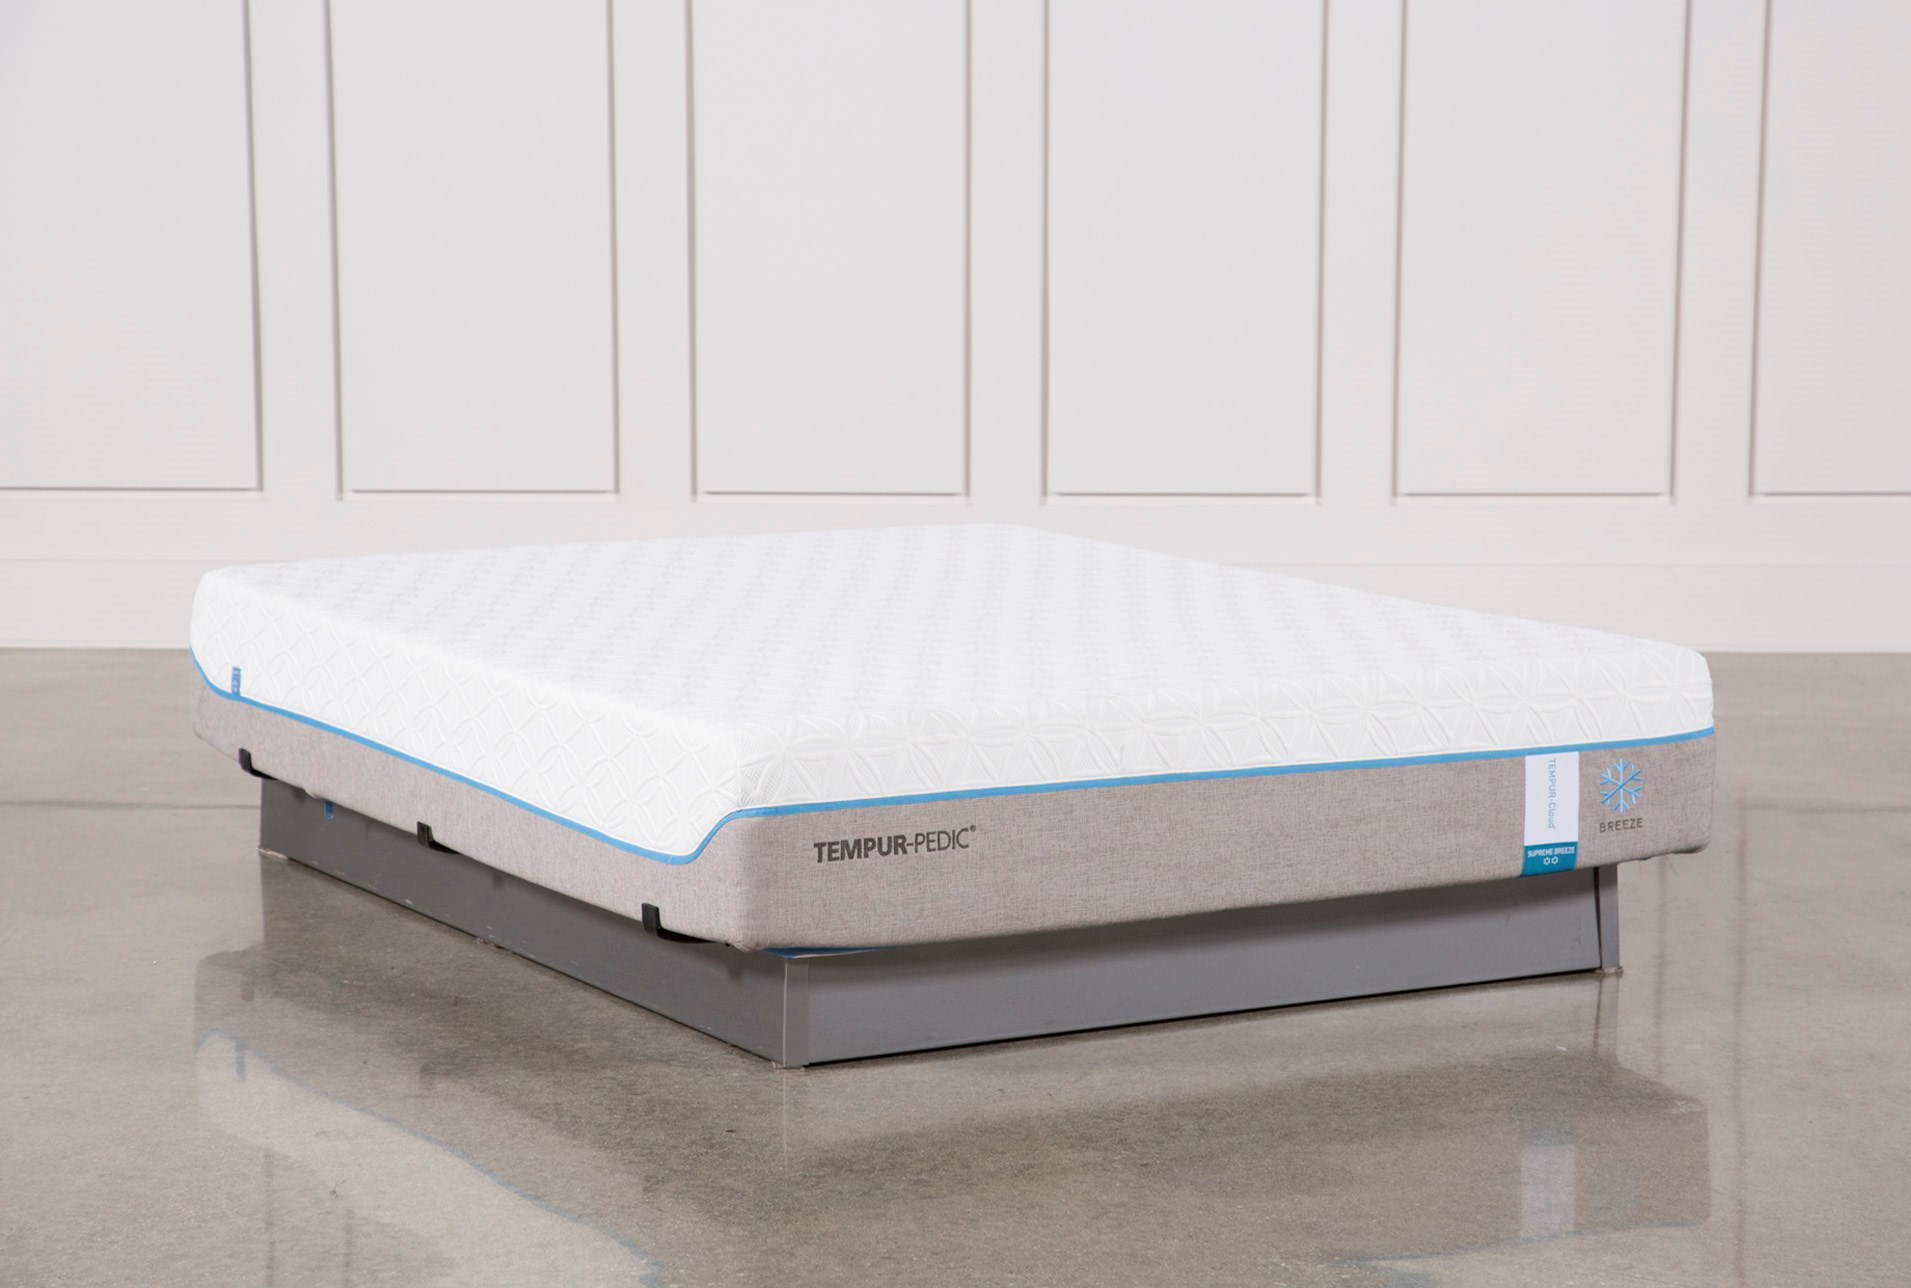 allura authentic floor tempur queen mattress pedic model contour price